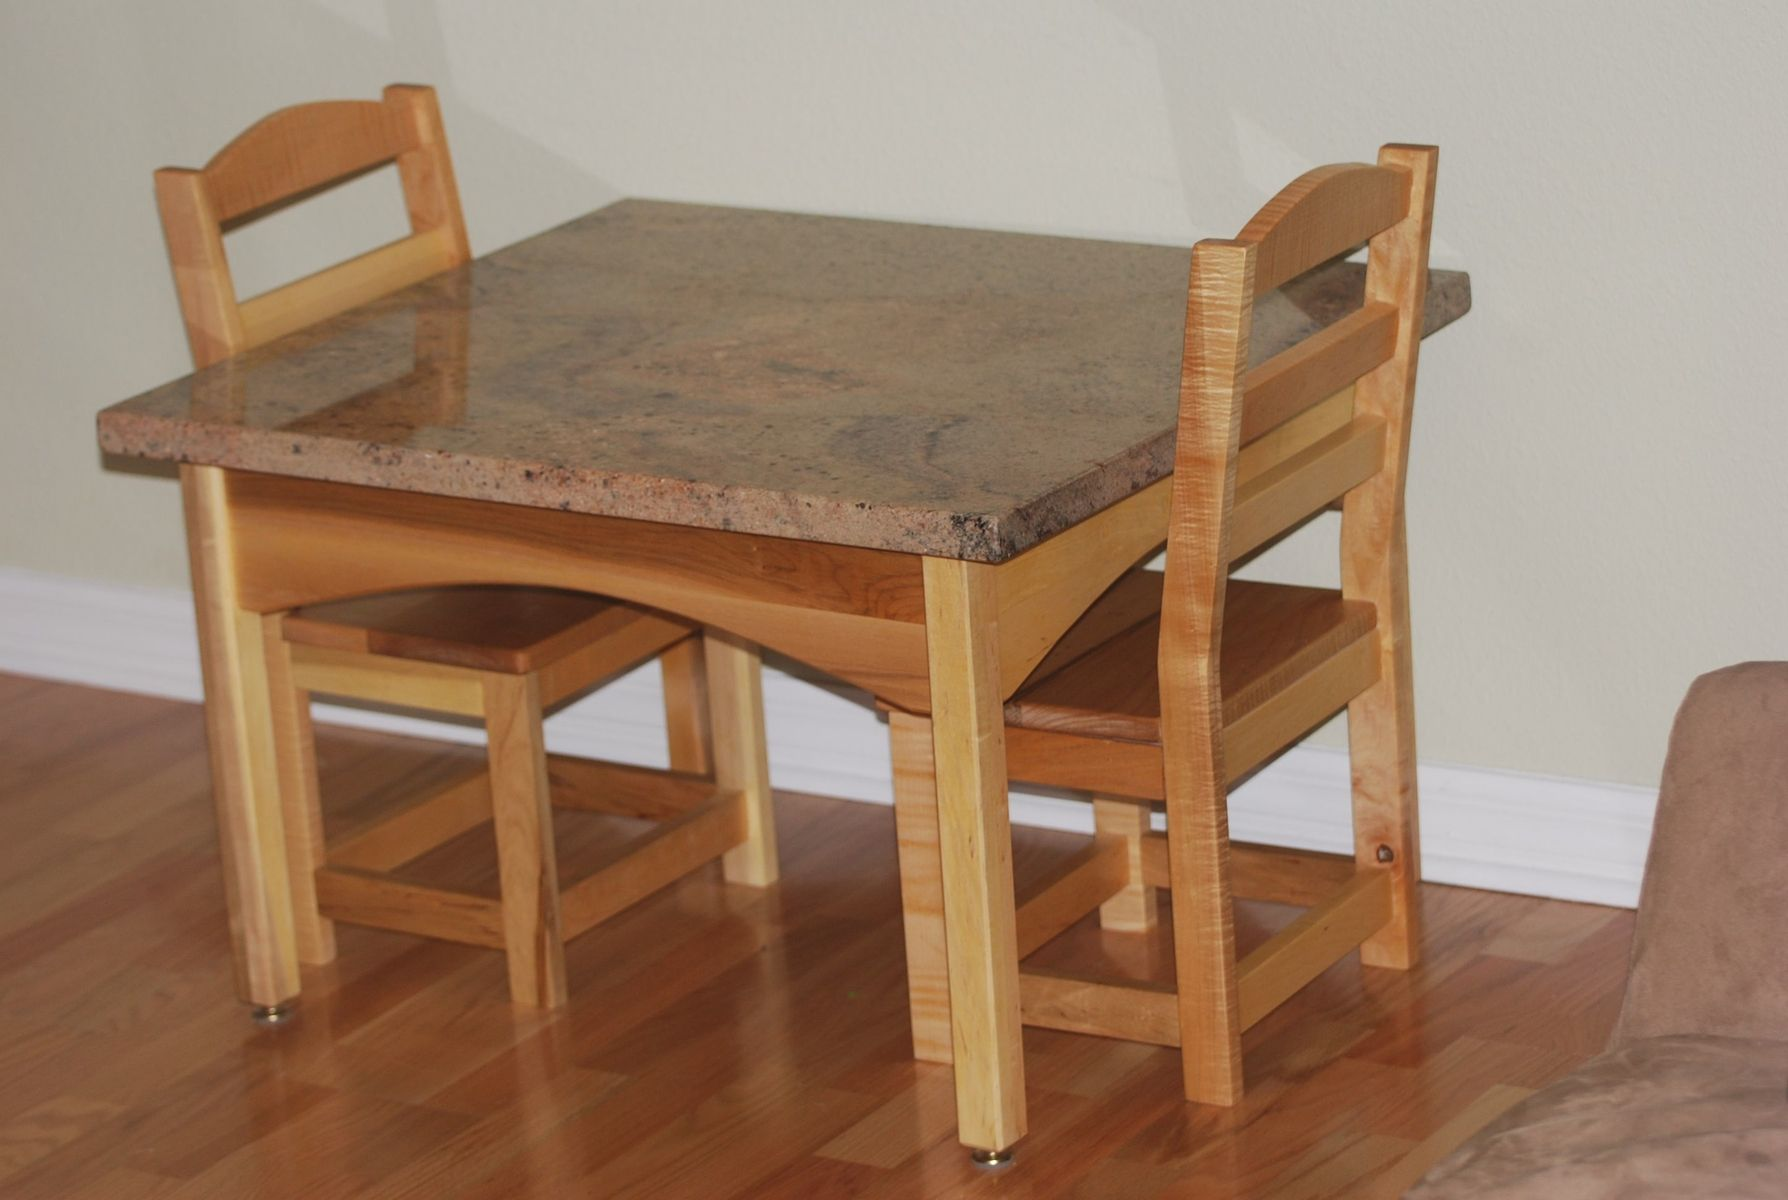 Kids Wooden Table And Chairs Hand Crafted Childrens Table And Chair Set By Memphis